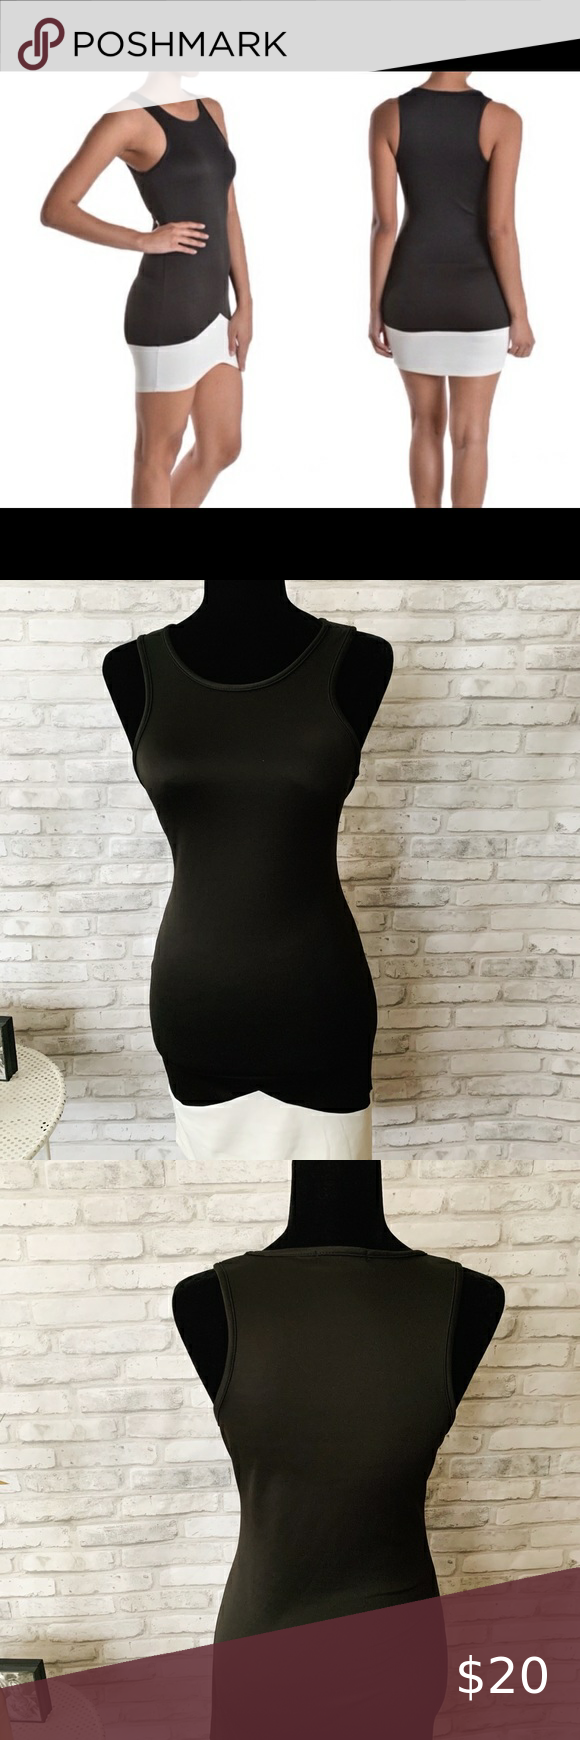 Black And White Contrasting Sleeveless Dress In 2021 Cute Blue Dresses Knitted Bodycon Dress White Babydoll Dress [ 1740 x 580 Pixel ]